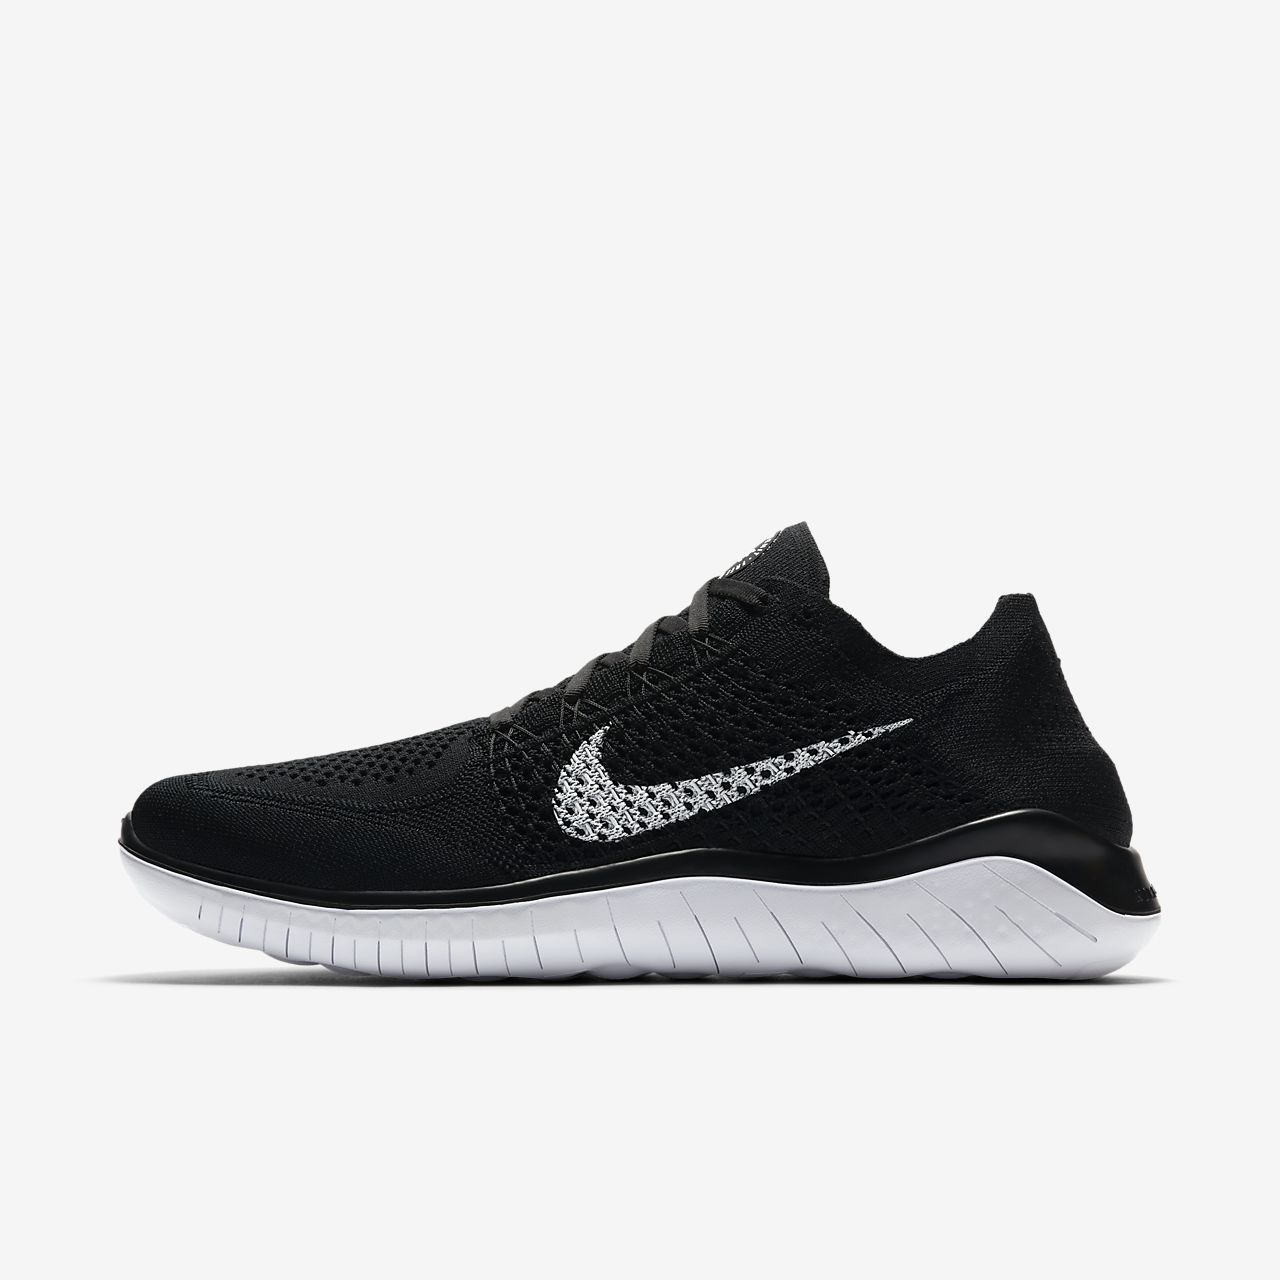 Marques Chaussure homme Nike homme Nike Free Rn Flyknit 2018 Black/anthracite